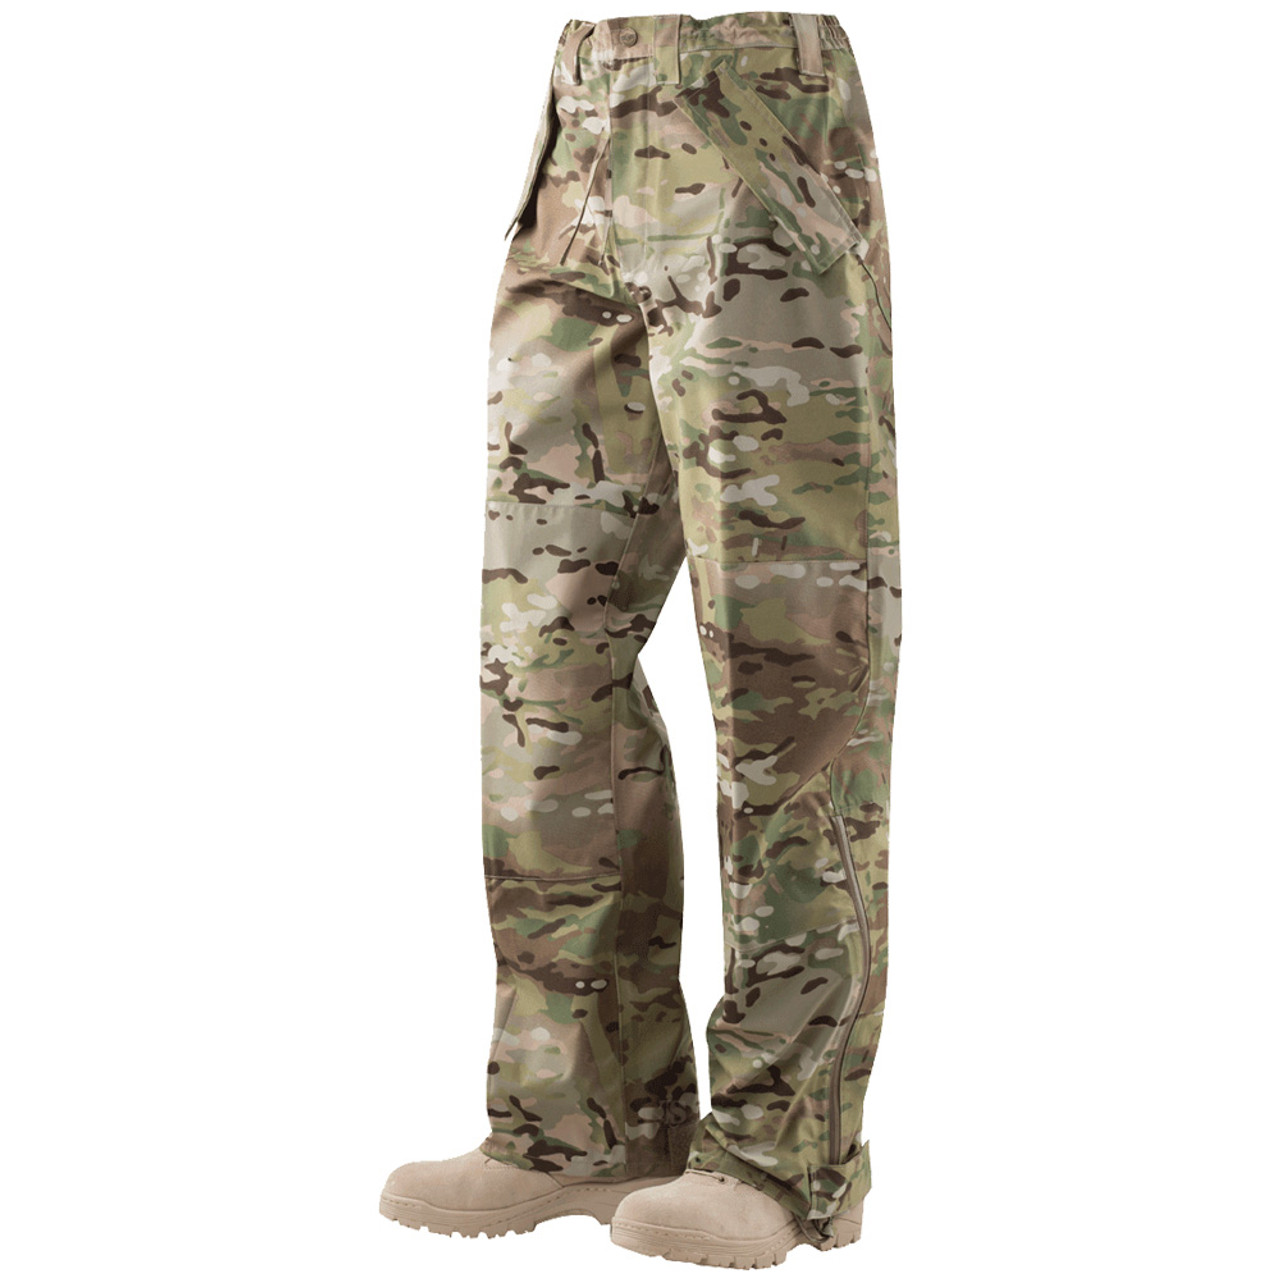 Tru-Spec 2045 H2O Proof ECWCS Tactical MultiCam Pants, 3-Layer Breathable Nylon, Relaxed Fit, Adjustable Waist, Waterproof, Windproof, Zipper leg openings with hook and loop ankle adjustments